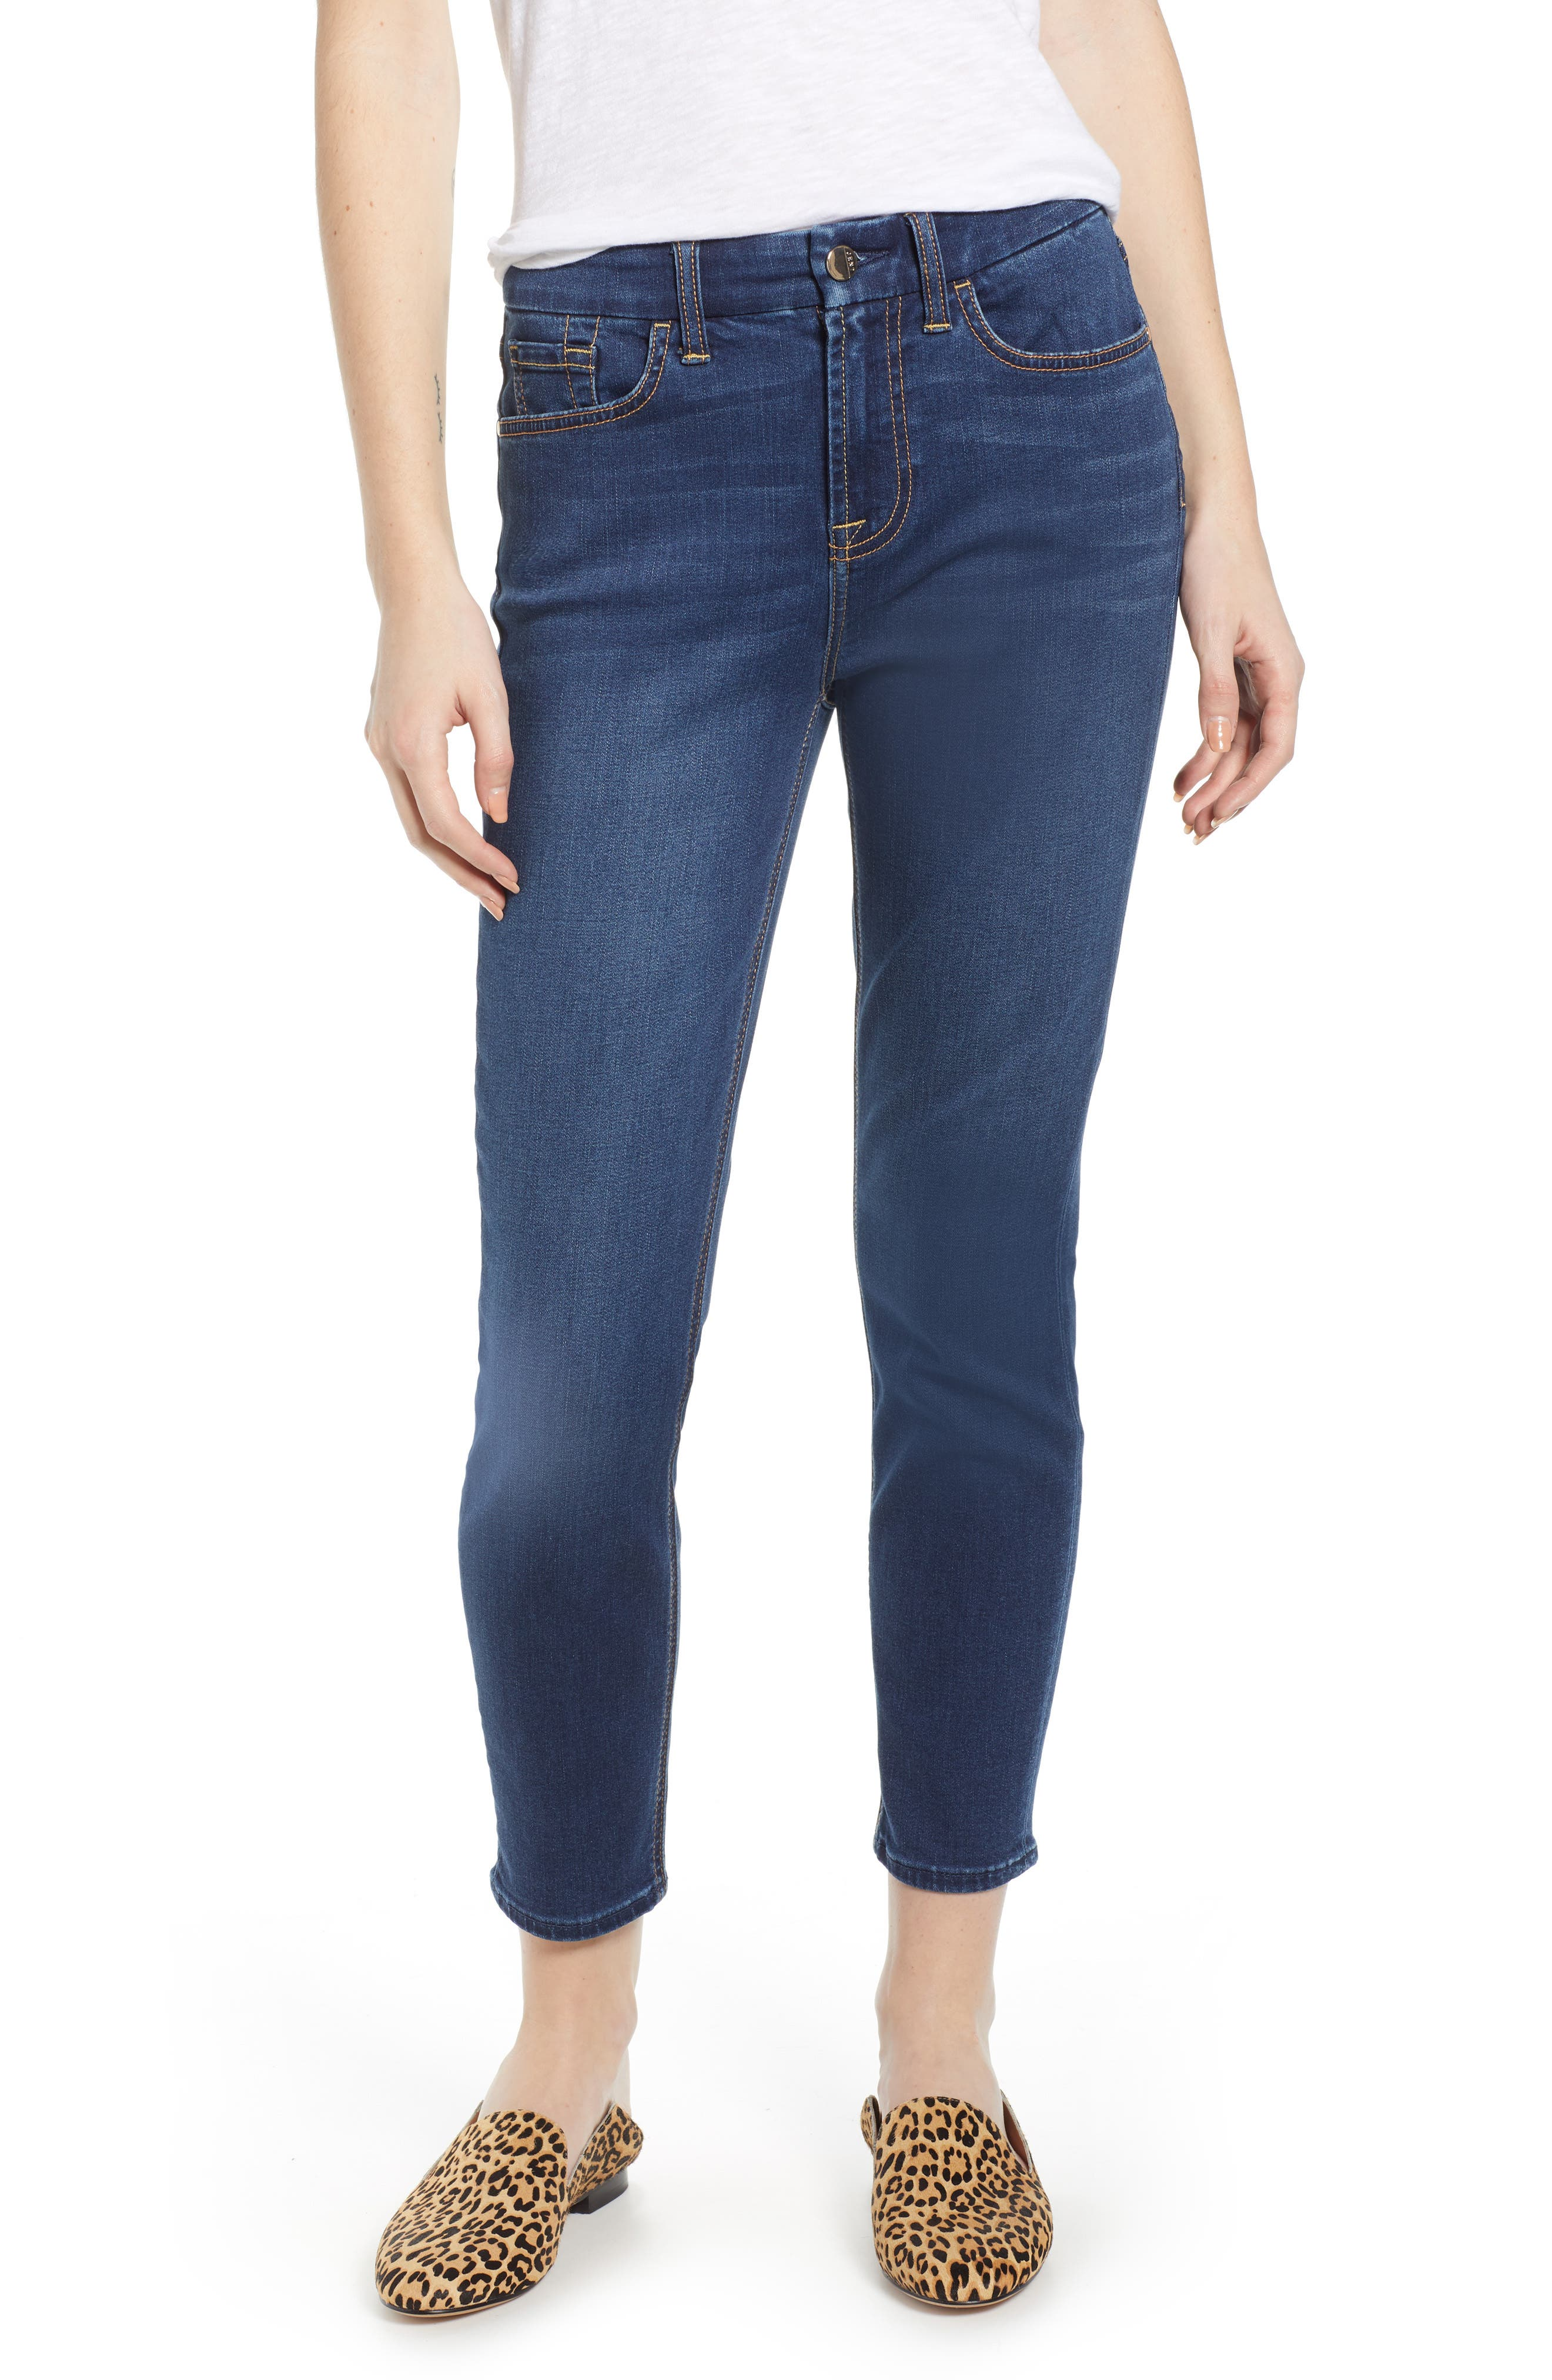 JEN7 BY 7 FOR ALL MANKIND Ankle Skinny Jeans, Main, color, 405